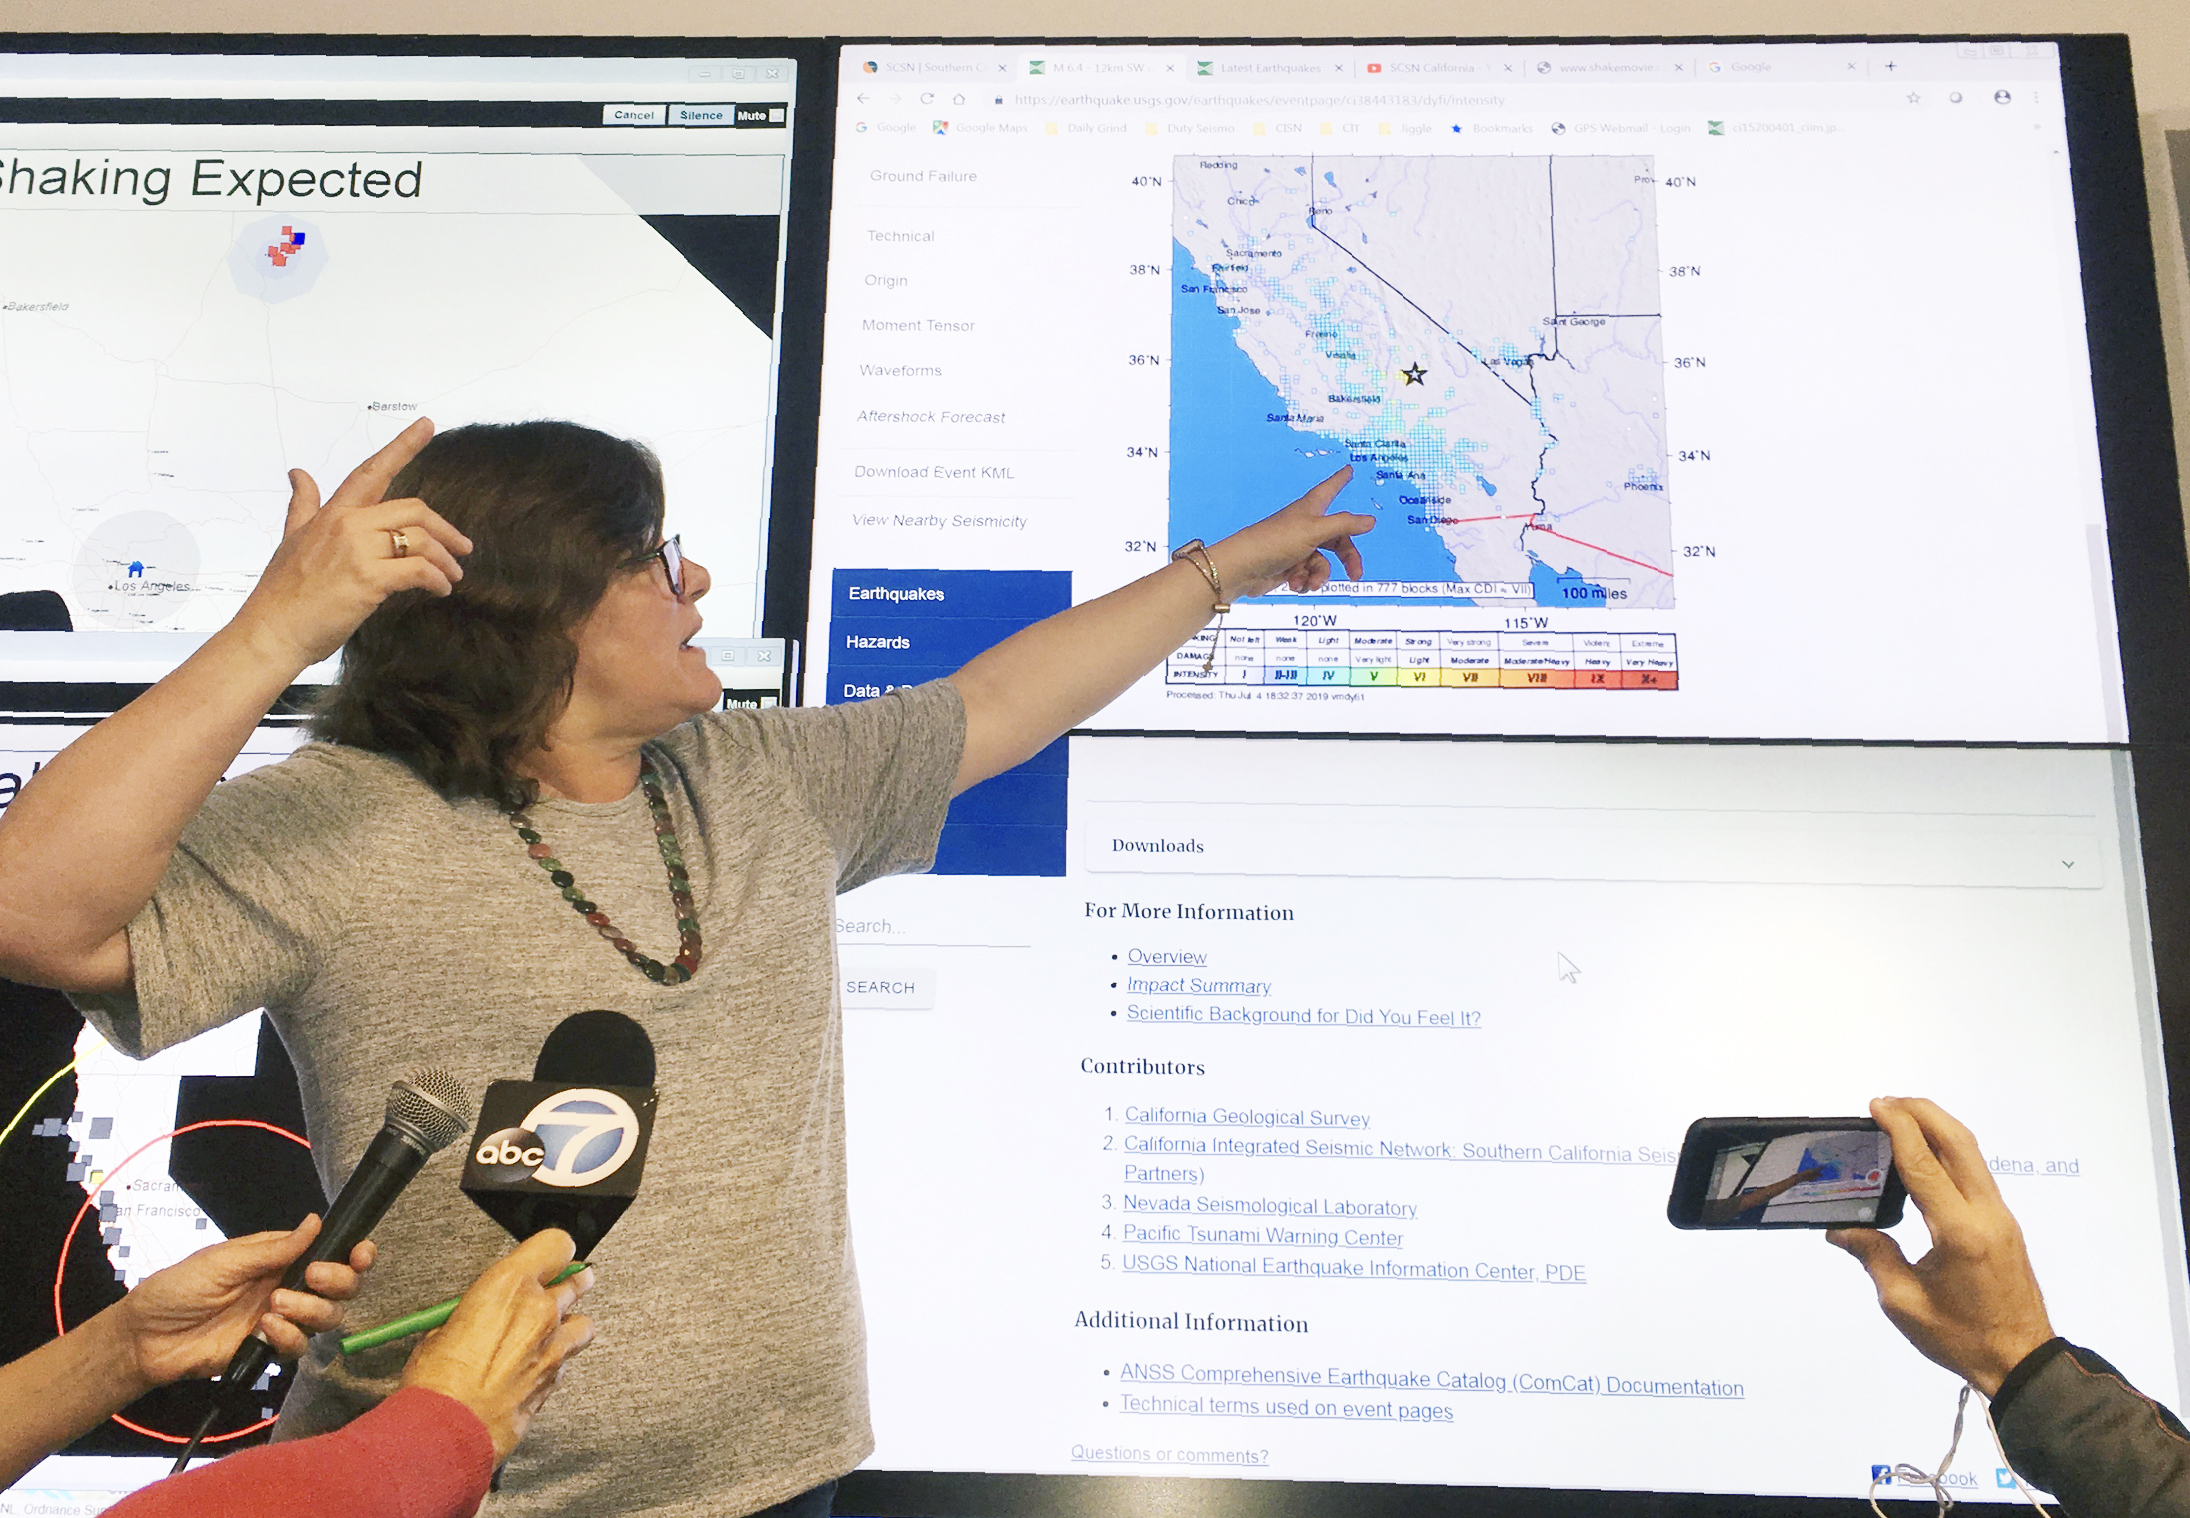 Seismologist Lucy Jones talks during a news conference at the Caltech Seismological Laboratory in Pasadena, Calif., Thursday, July 4, 2019. A strong earthquake rattled a large swath of Southern California and parts of Nevada on Thursday morning, making hanging lamps sway and photo frames on walls shake. There were no immediate reports of damage or injuries but a swarm of aftershocks were reported.